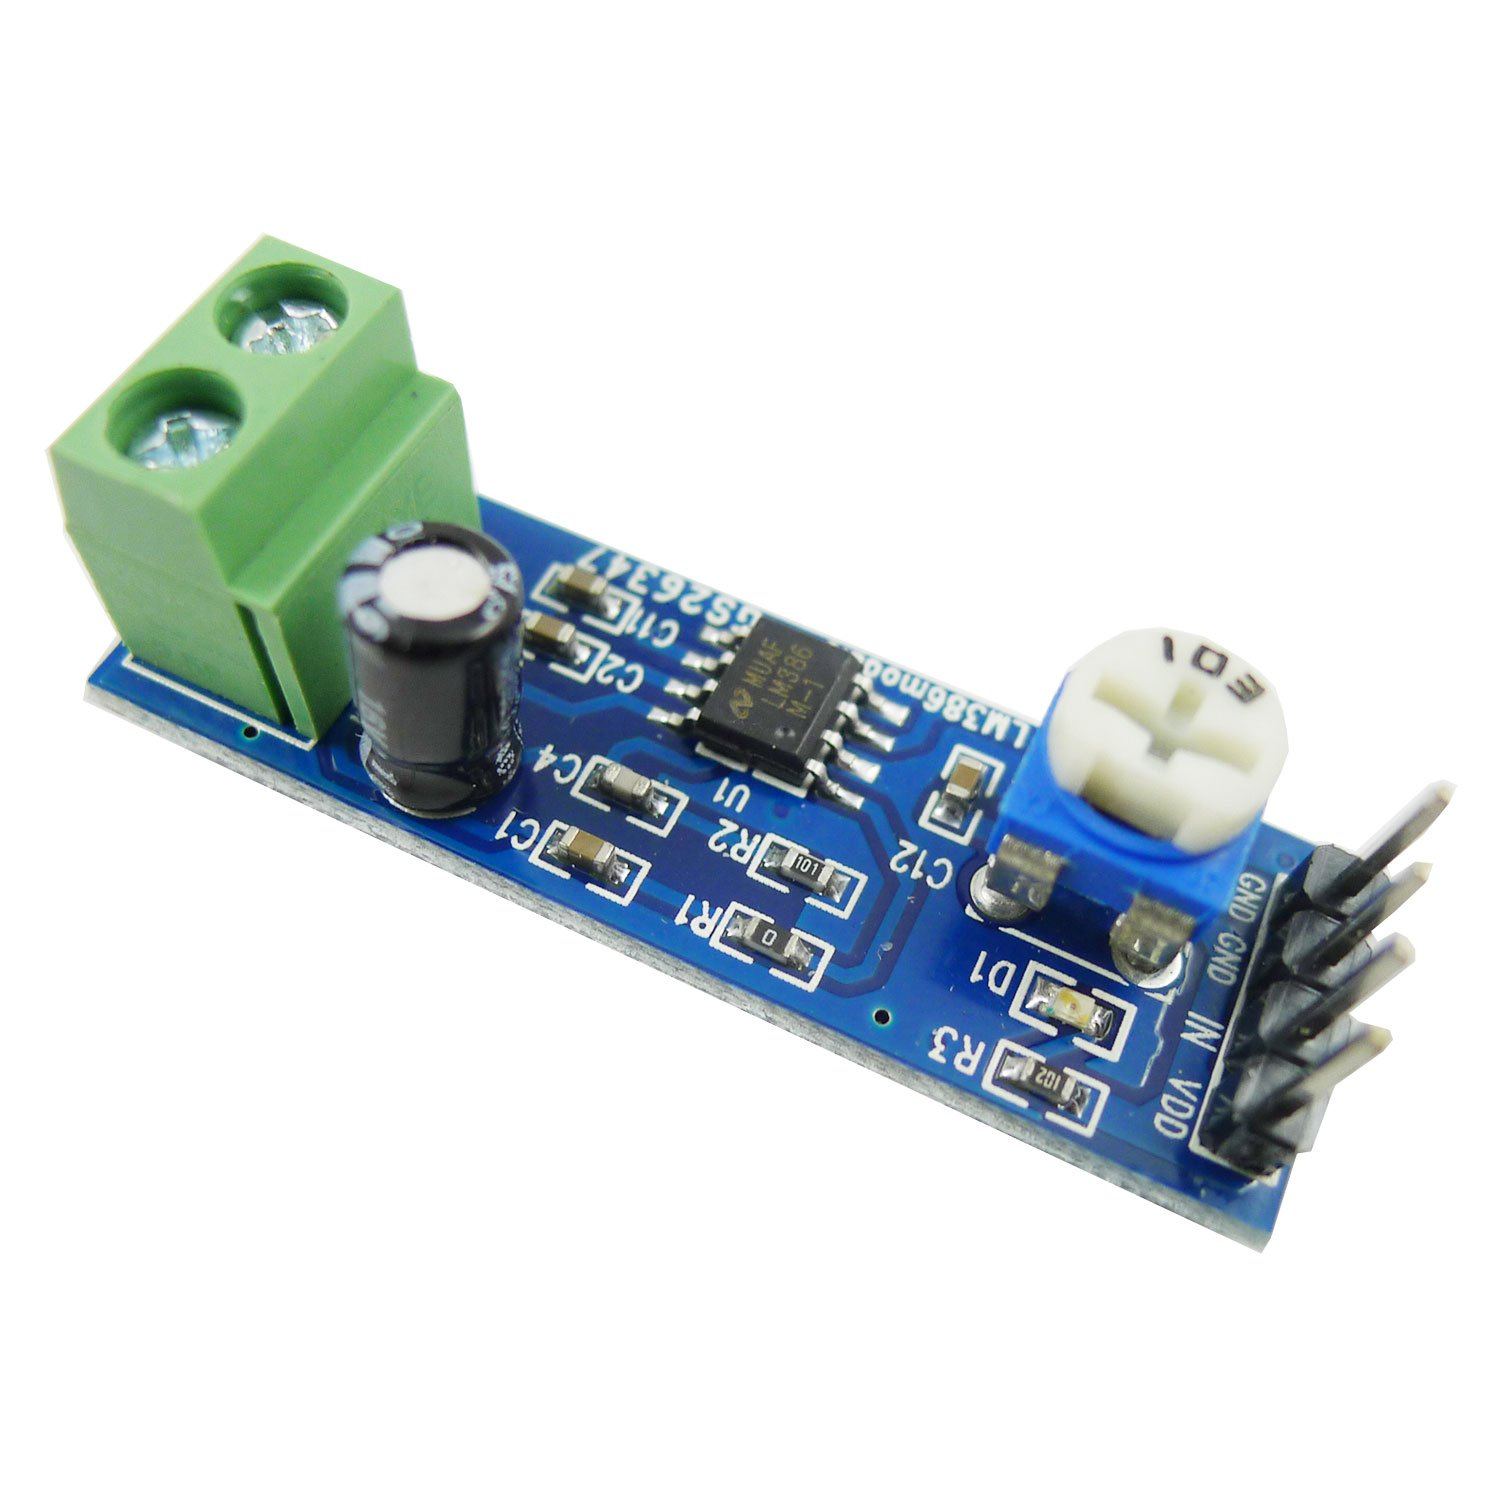 Aihasd Lm386 Audio Amplifier Module 200 Times 5v 12v Circuit With Pcb Electronics